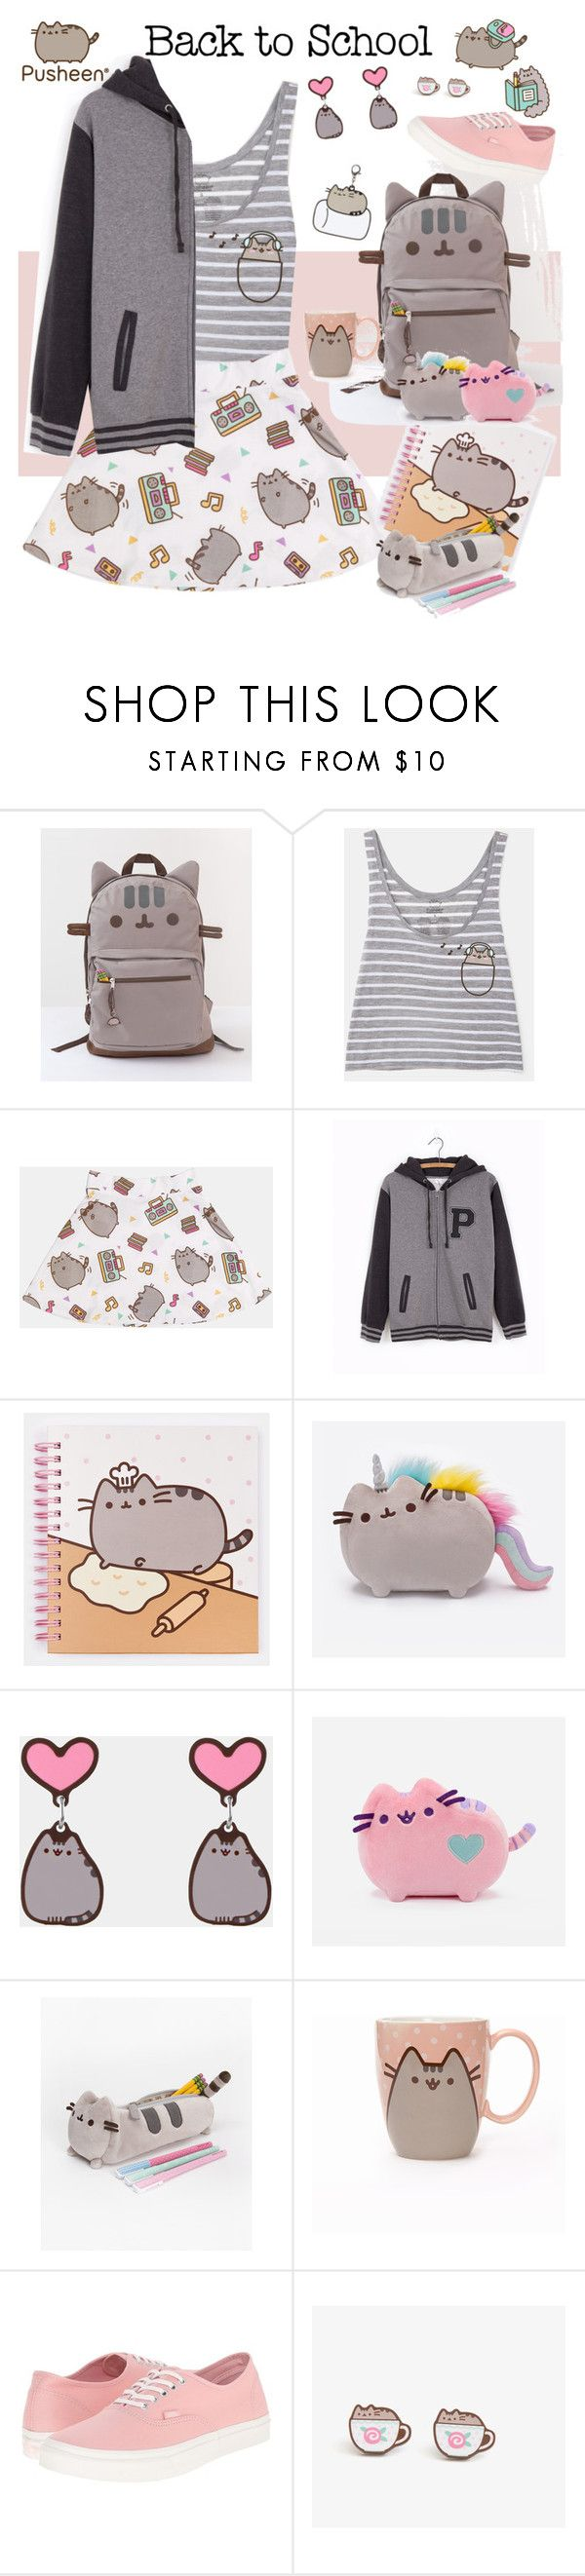 """#PVxPusheen"" by streetglamour on Polyvore featuring Pusheen, Vans, contestentry and PVxPusheen"